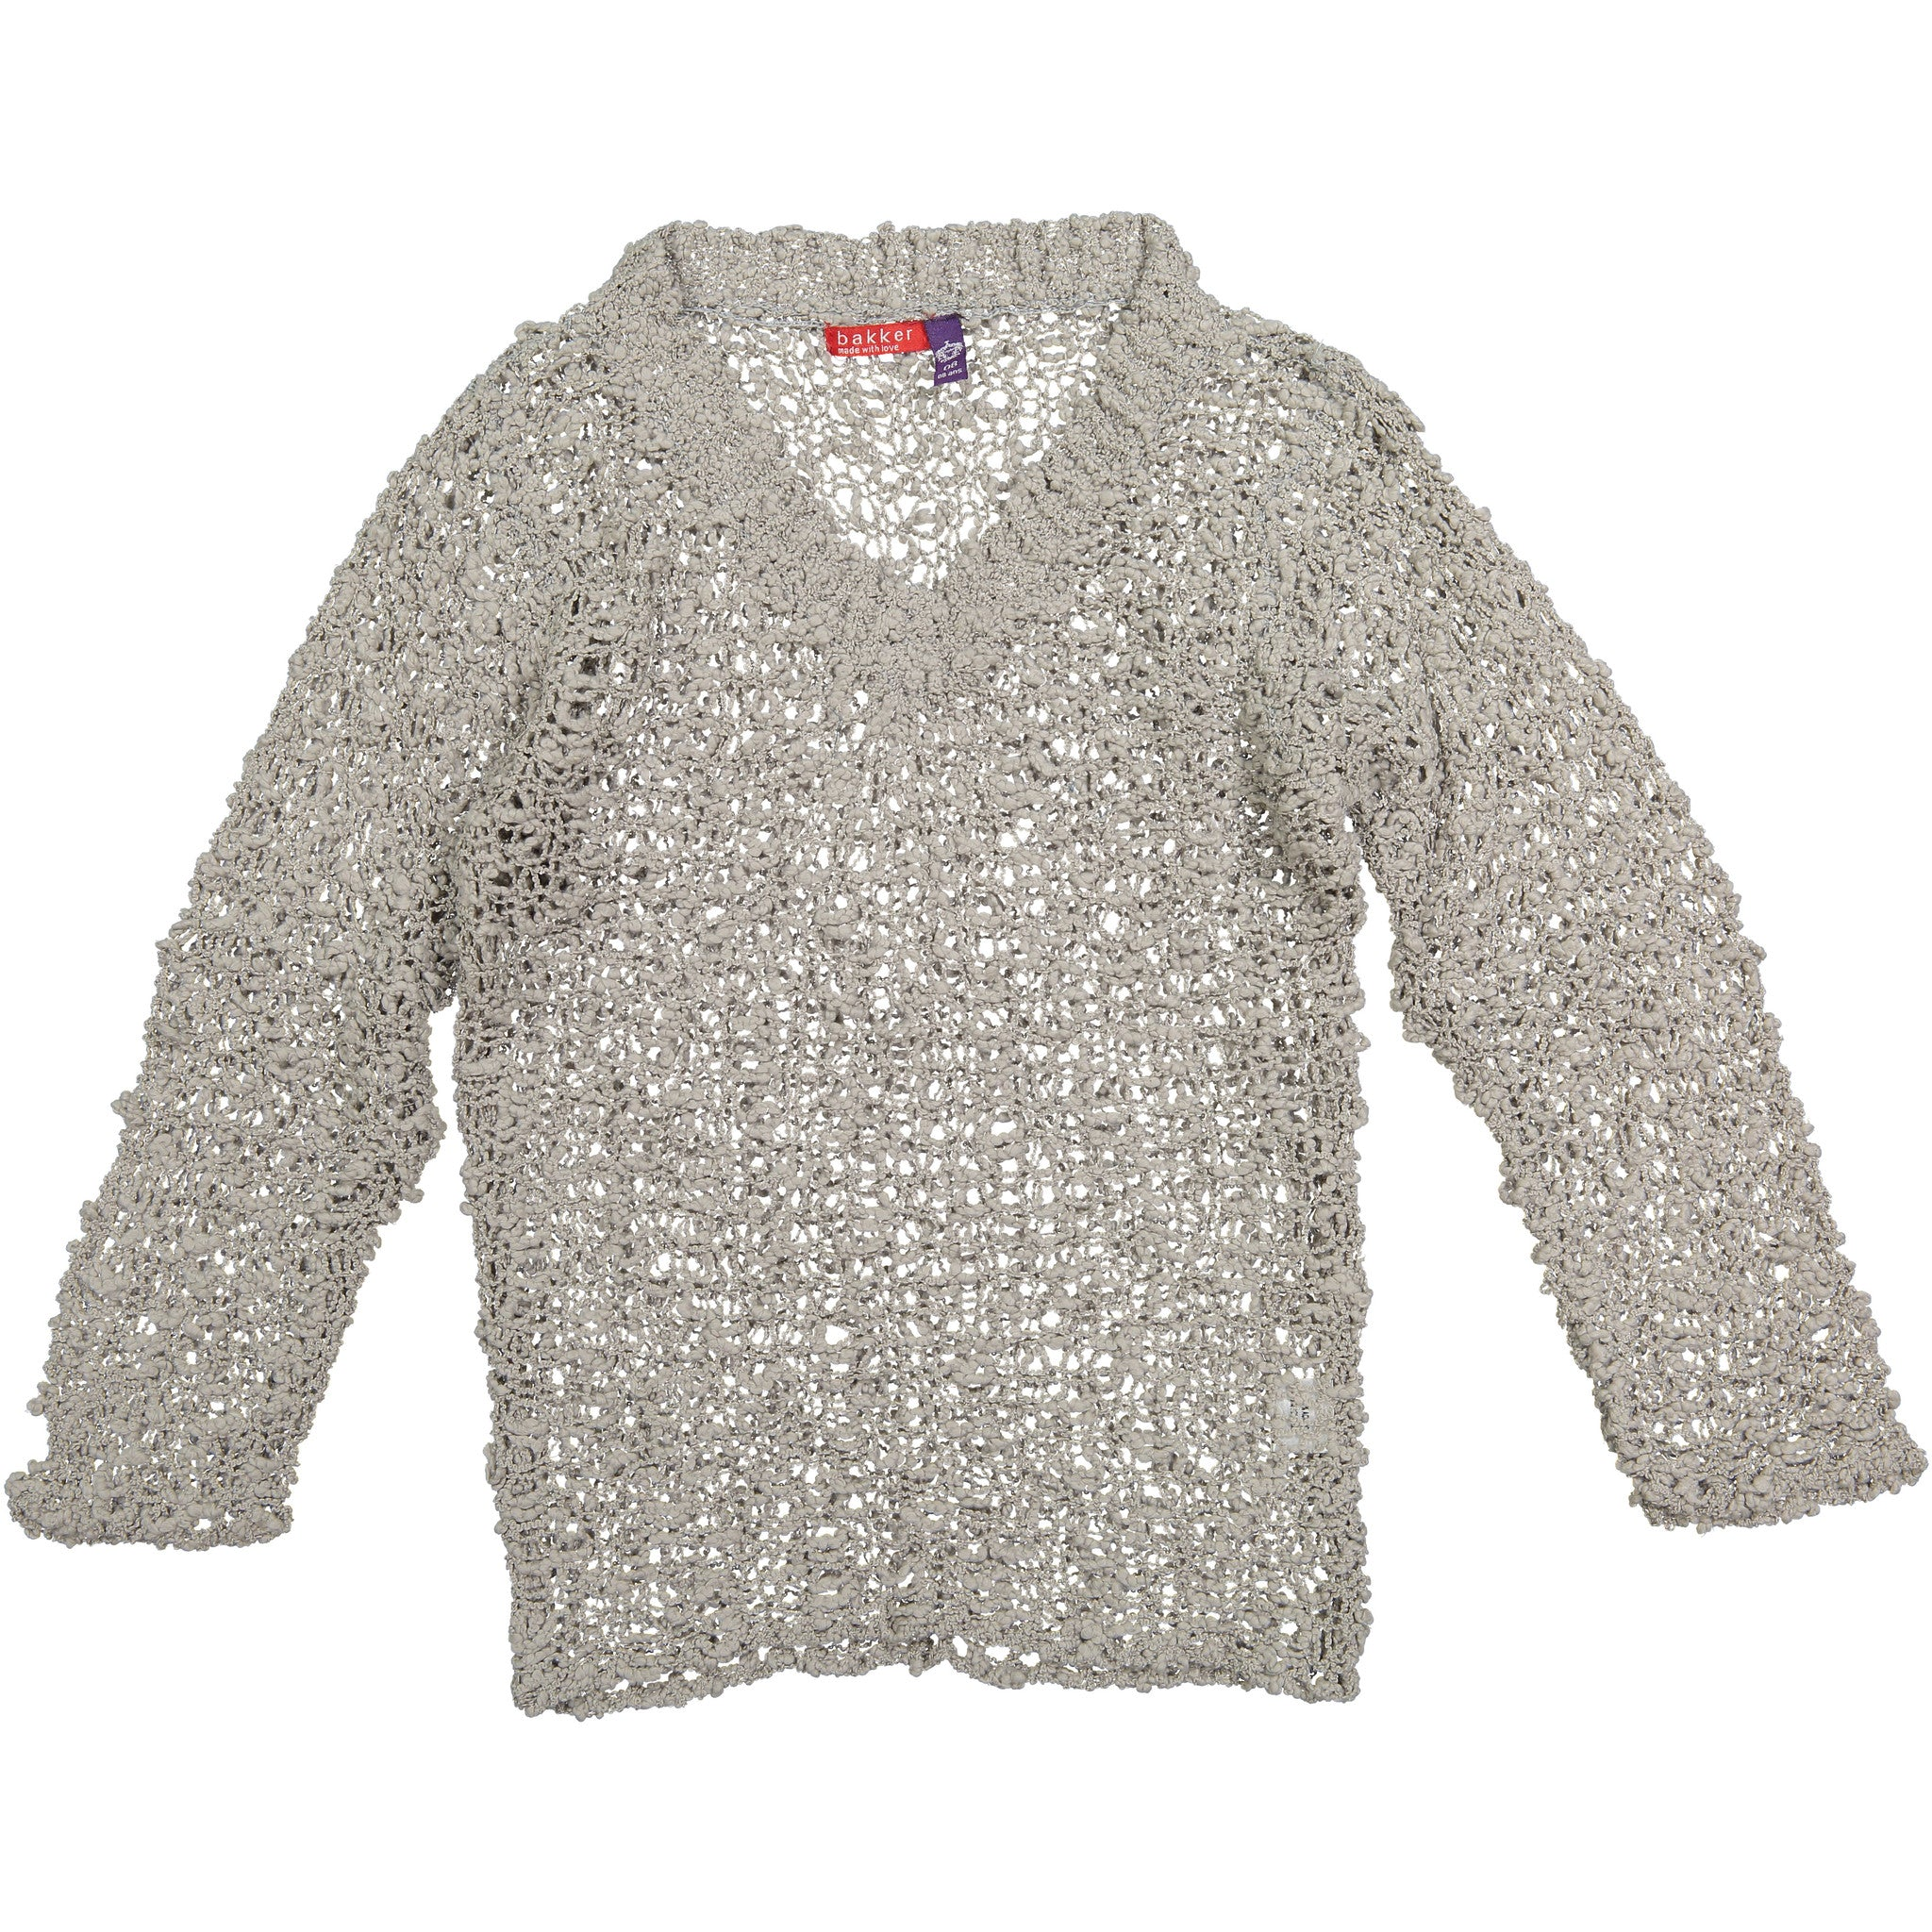 Bakker Grey Pull Pop Sweater - Ladida